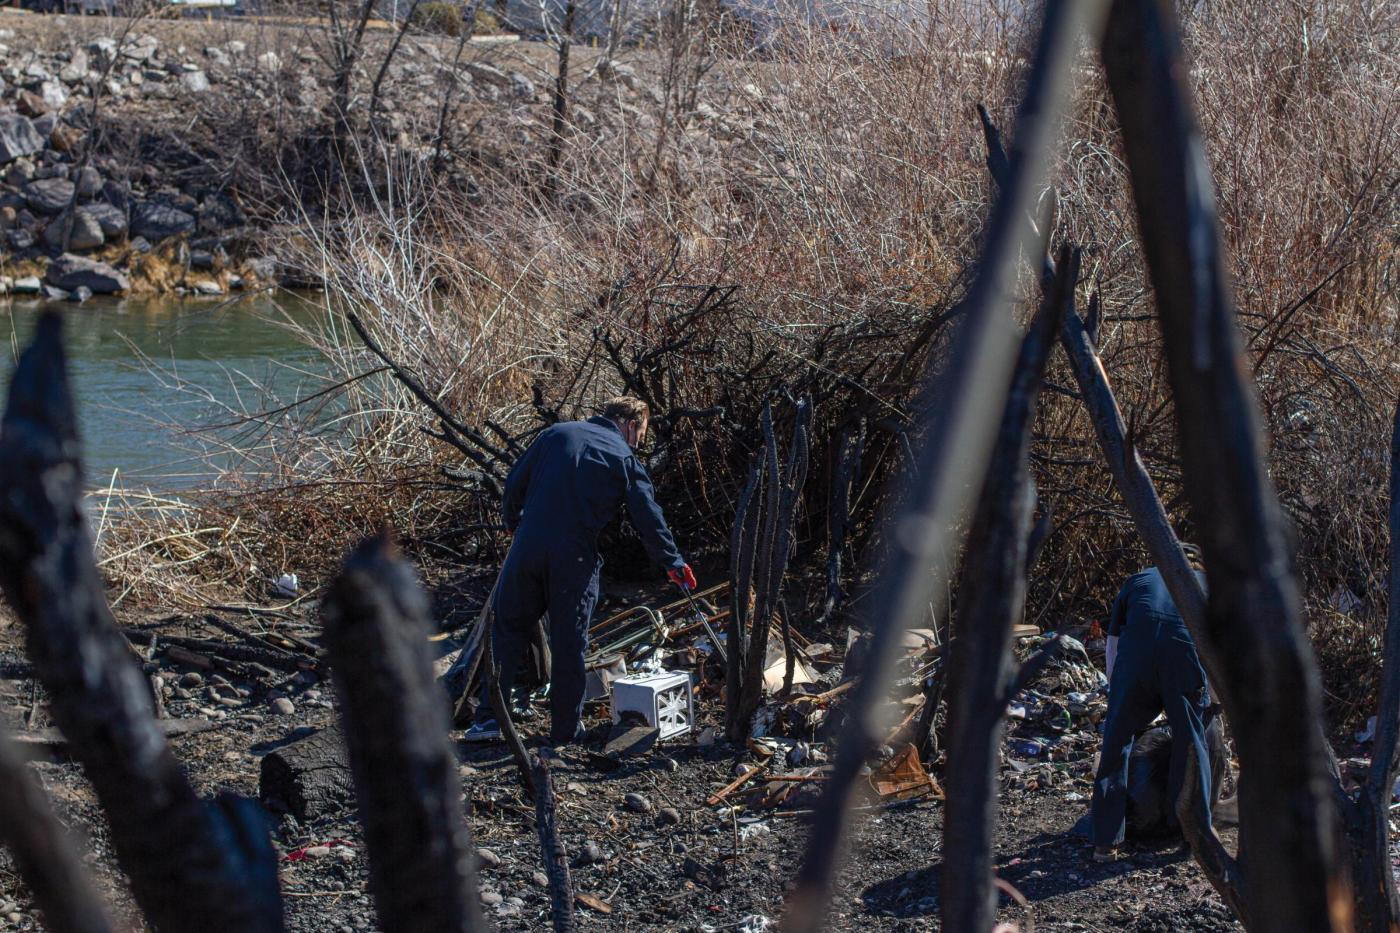 RESTORE AND PROTECT: Brian Wohlgemuth and other River Justice activists collect trash along the Truckee River.